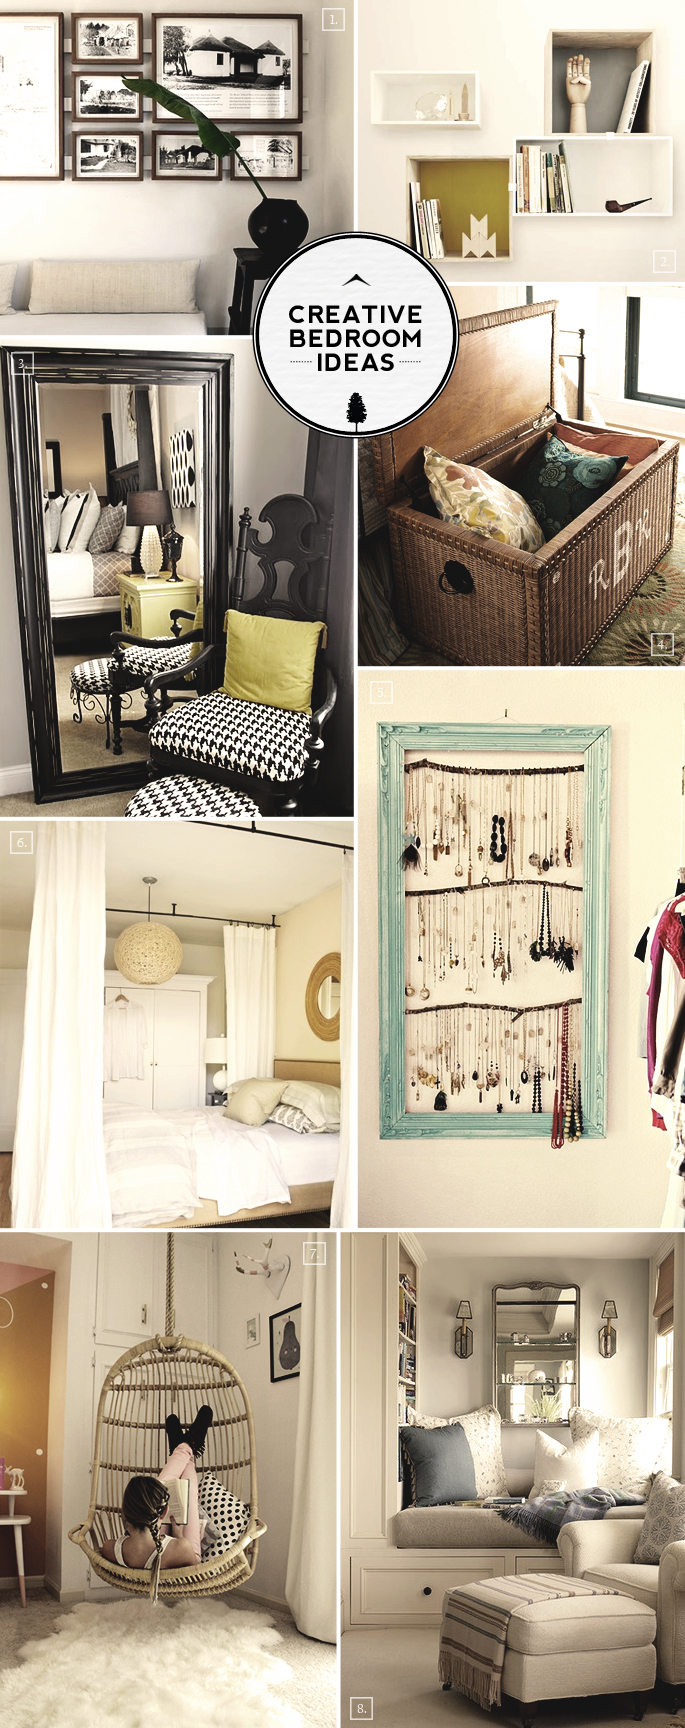 Creative Room Design Ideas: Creative Bedroom Ideas: From Reading Nooks To Hanging